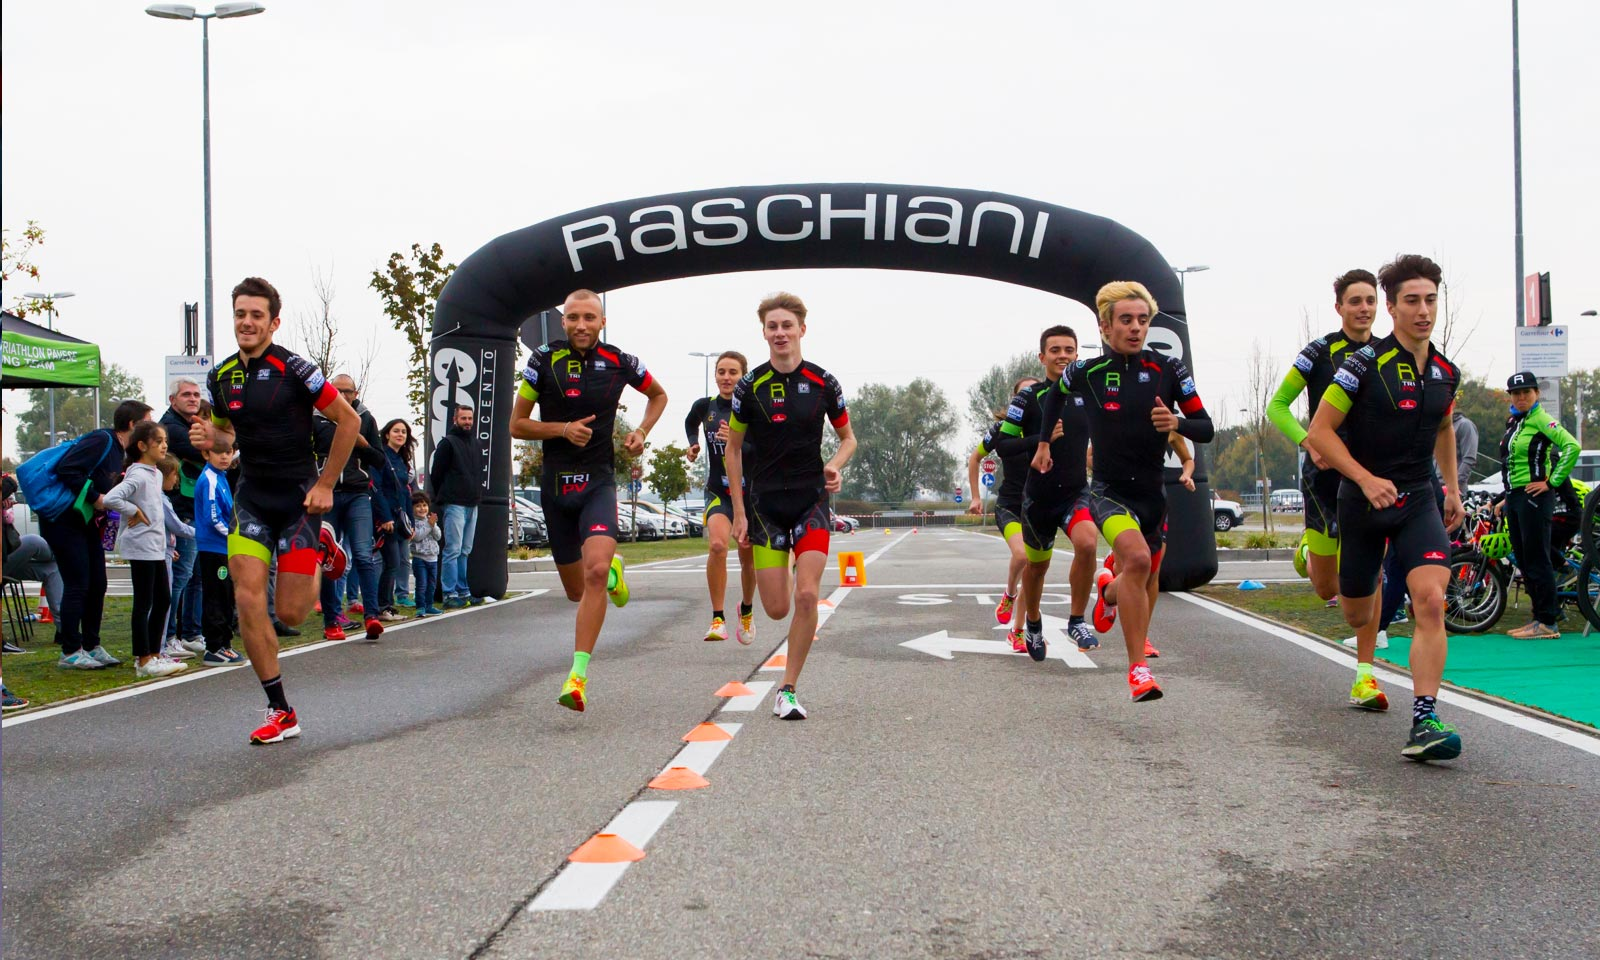 triathlon-pavese-raschiani-pavia-cycling-running-76